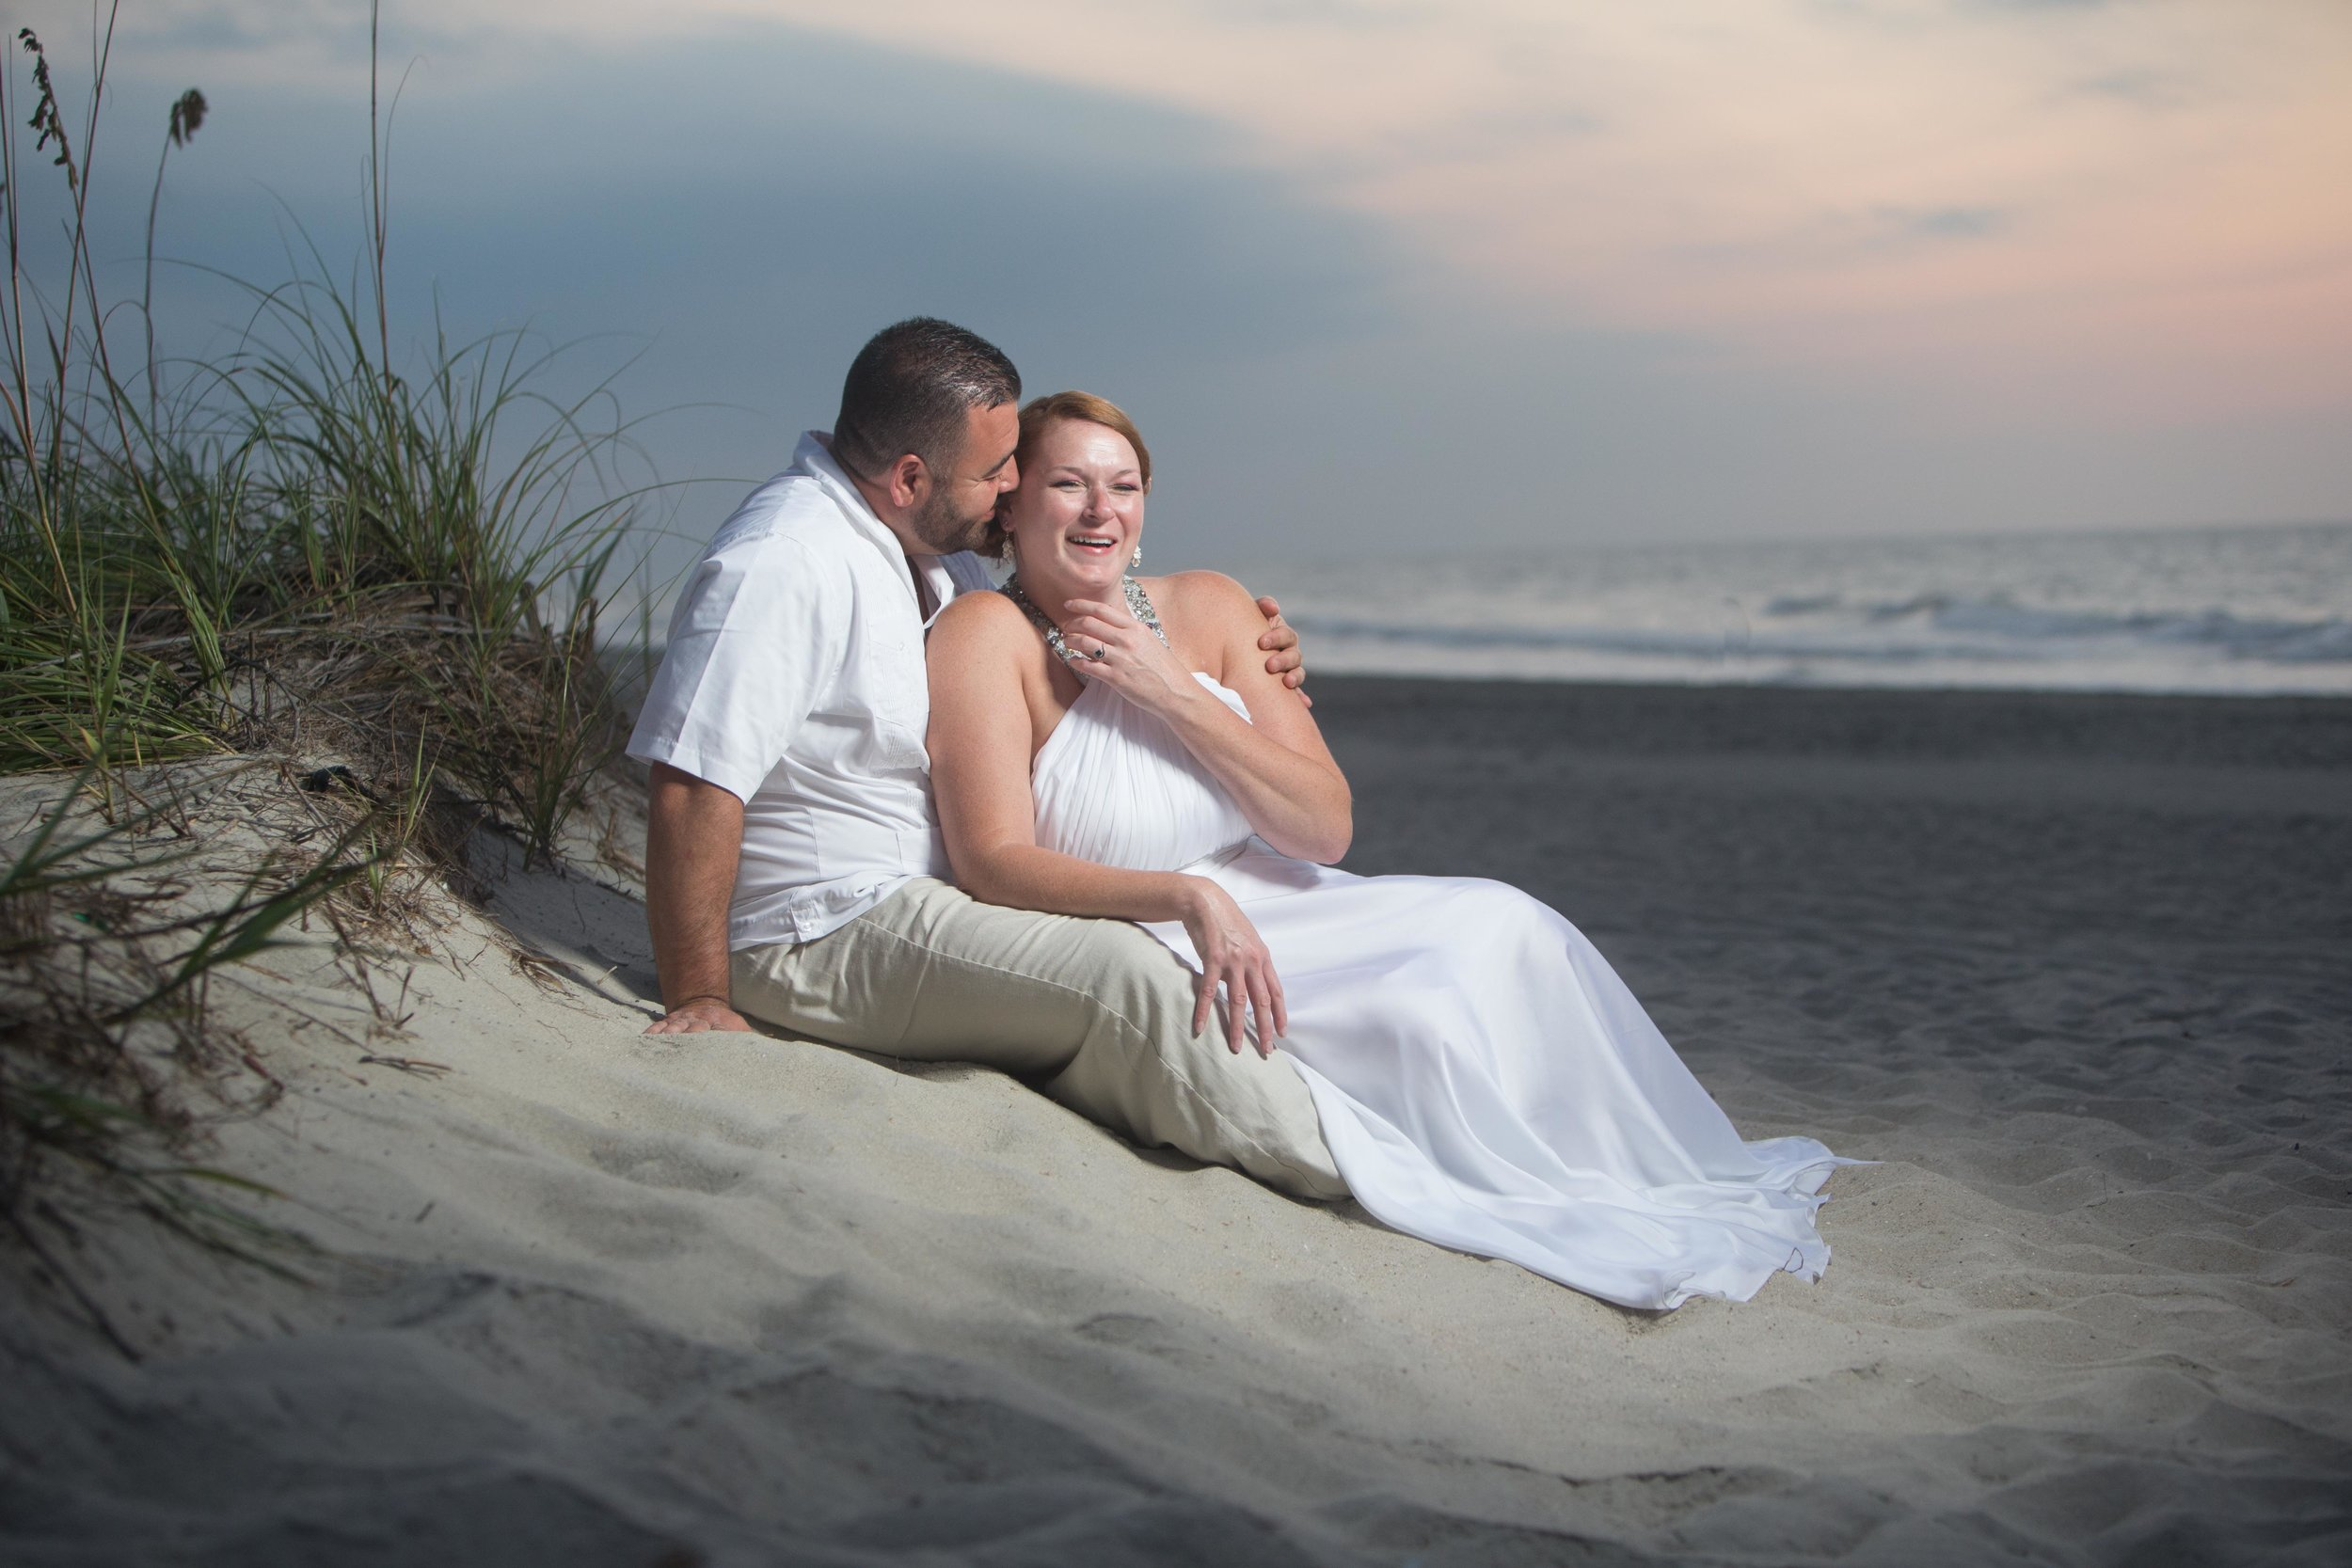 Bride and groom lounge in the sand on the beach enjoying the sunset